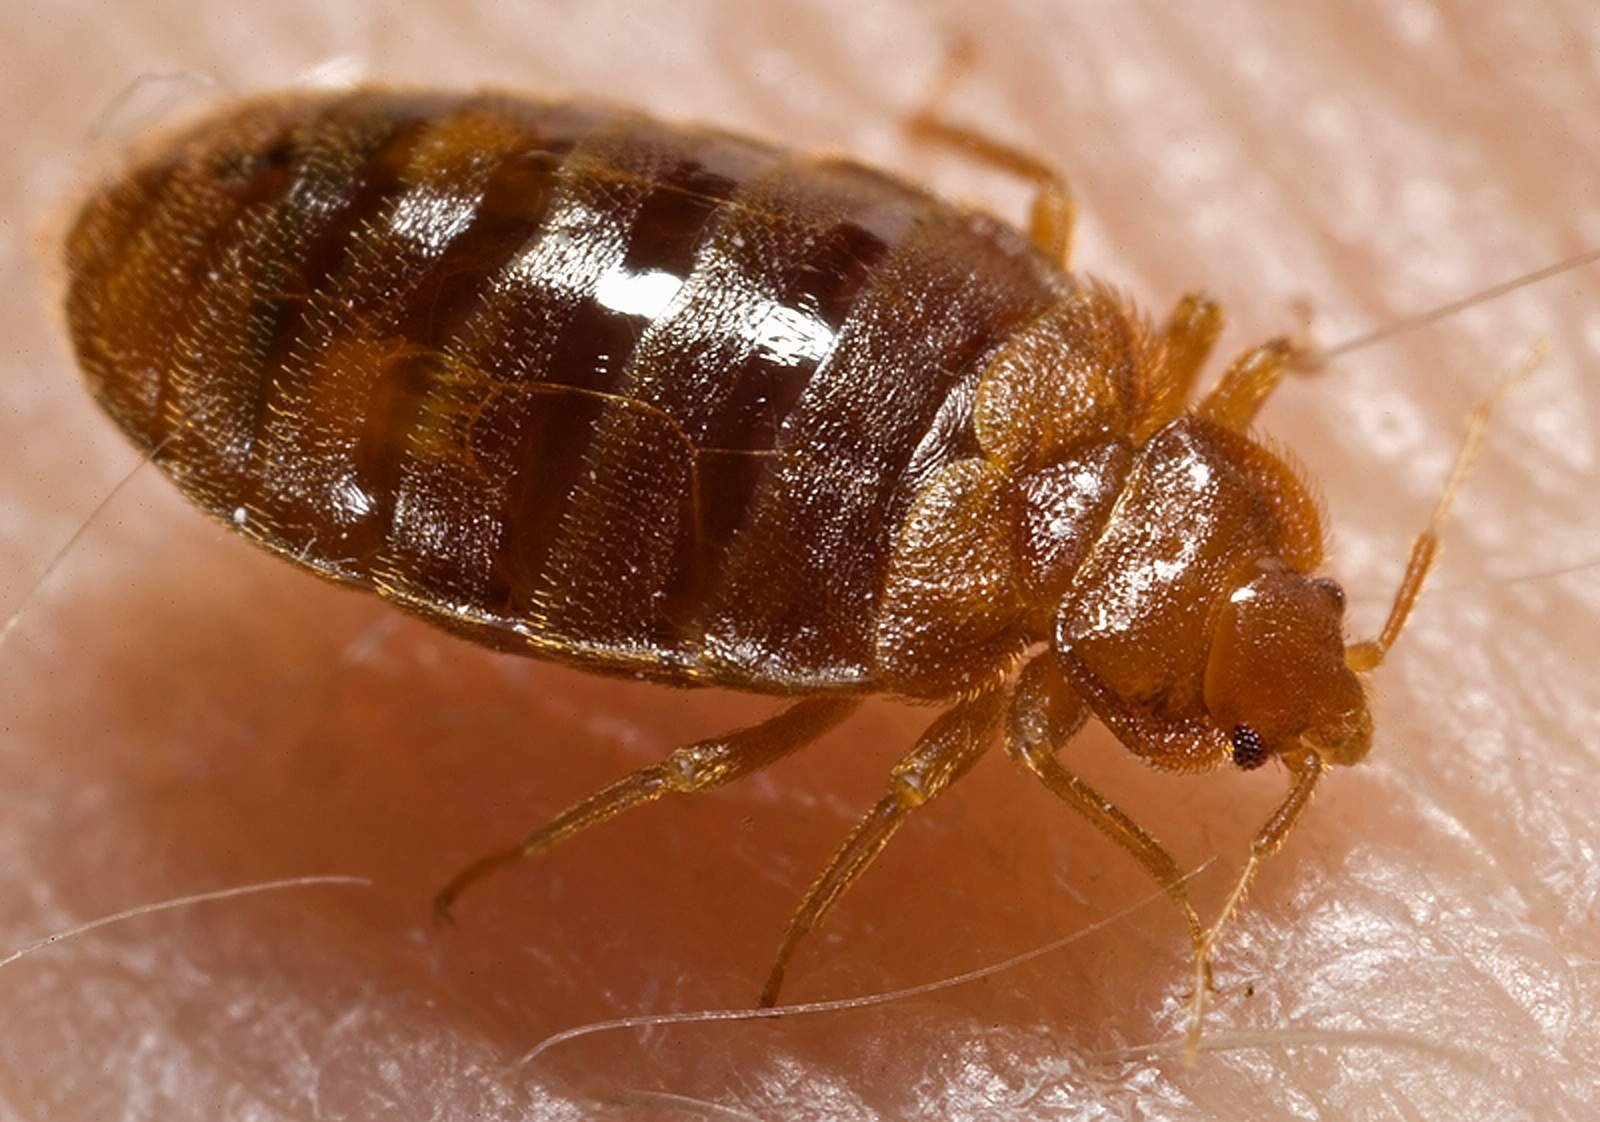 Baltimore again tops Orkin's list of 'Top 50 Bed Bug Cities'